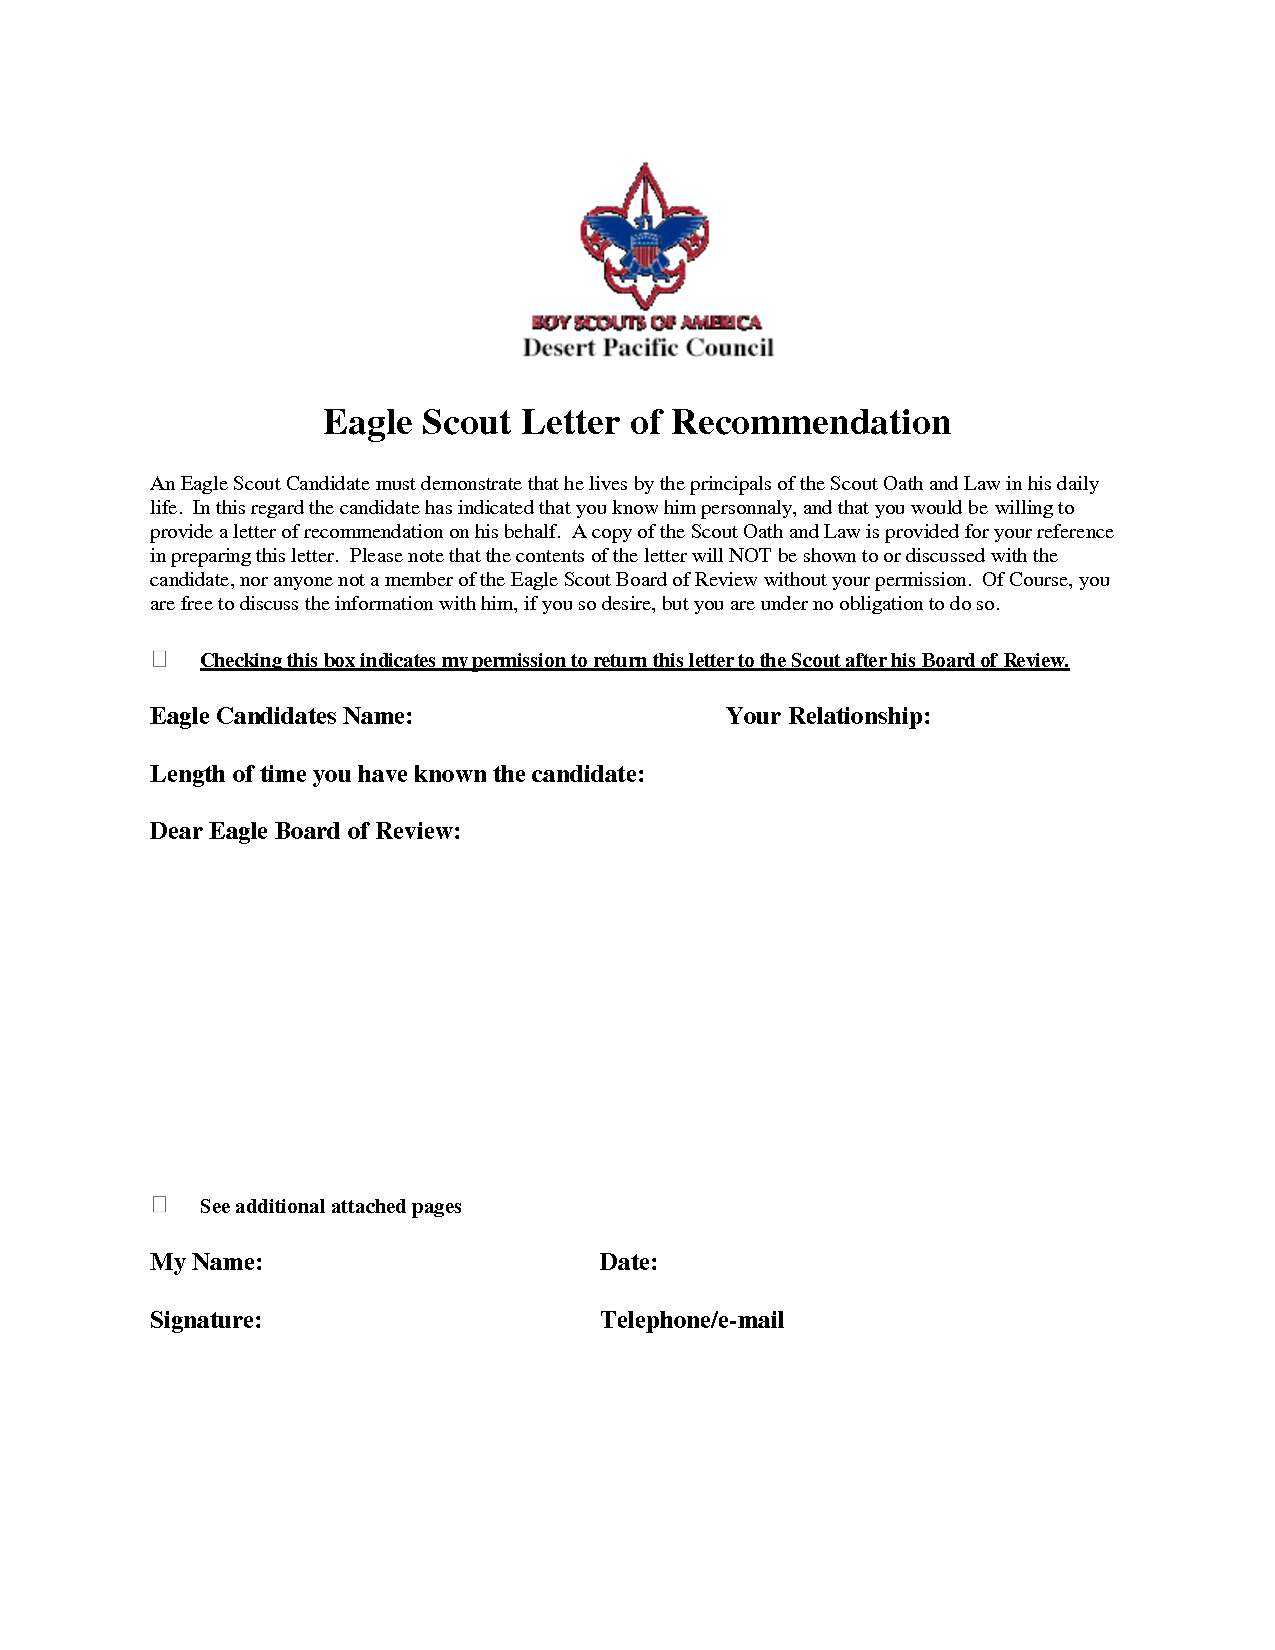 Eagle Scout Recommendation Letter Template - Eagle Scout Re Mendation Letter Sample